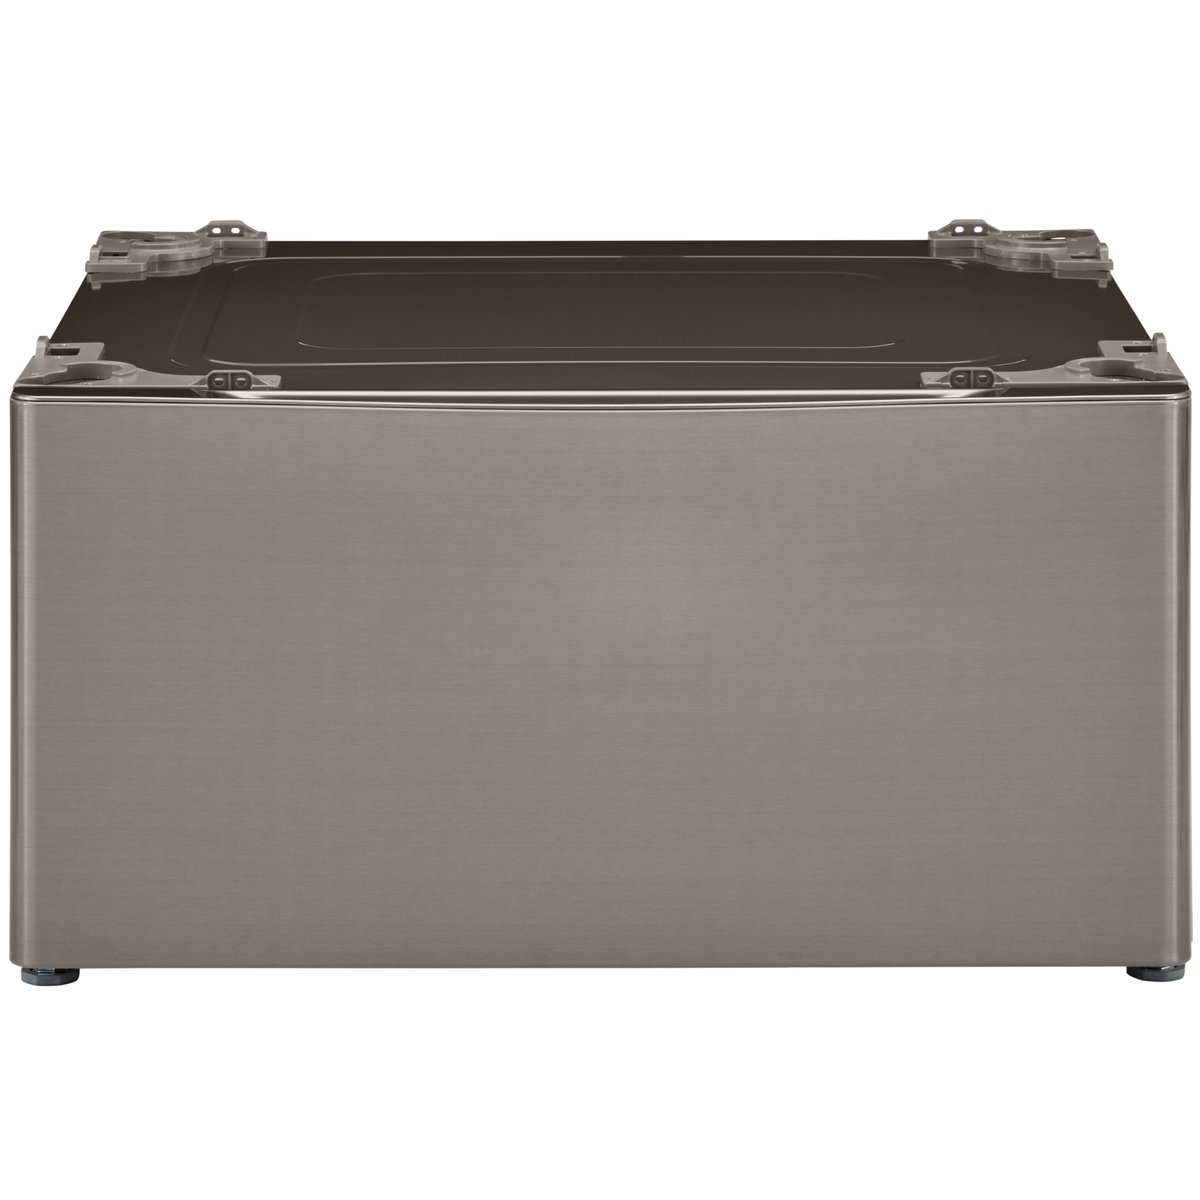 Kenmore 51123 13.7'' Laundry Pedestal with Storage Drawer in Metallic Silver, includes delivery and hookup (Available in select cities only)